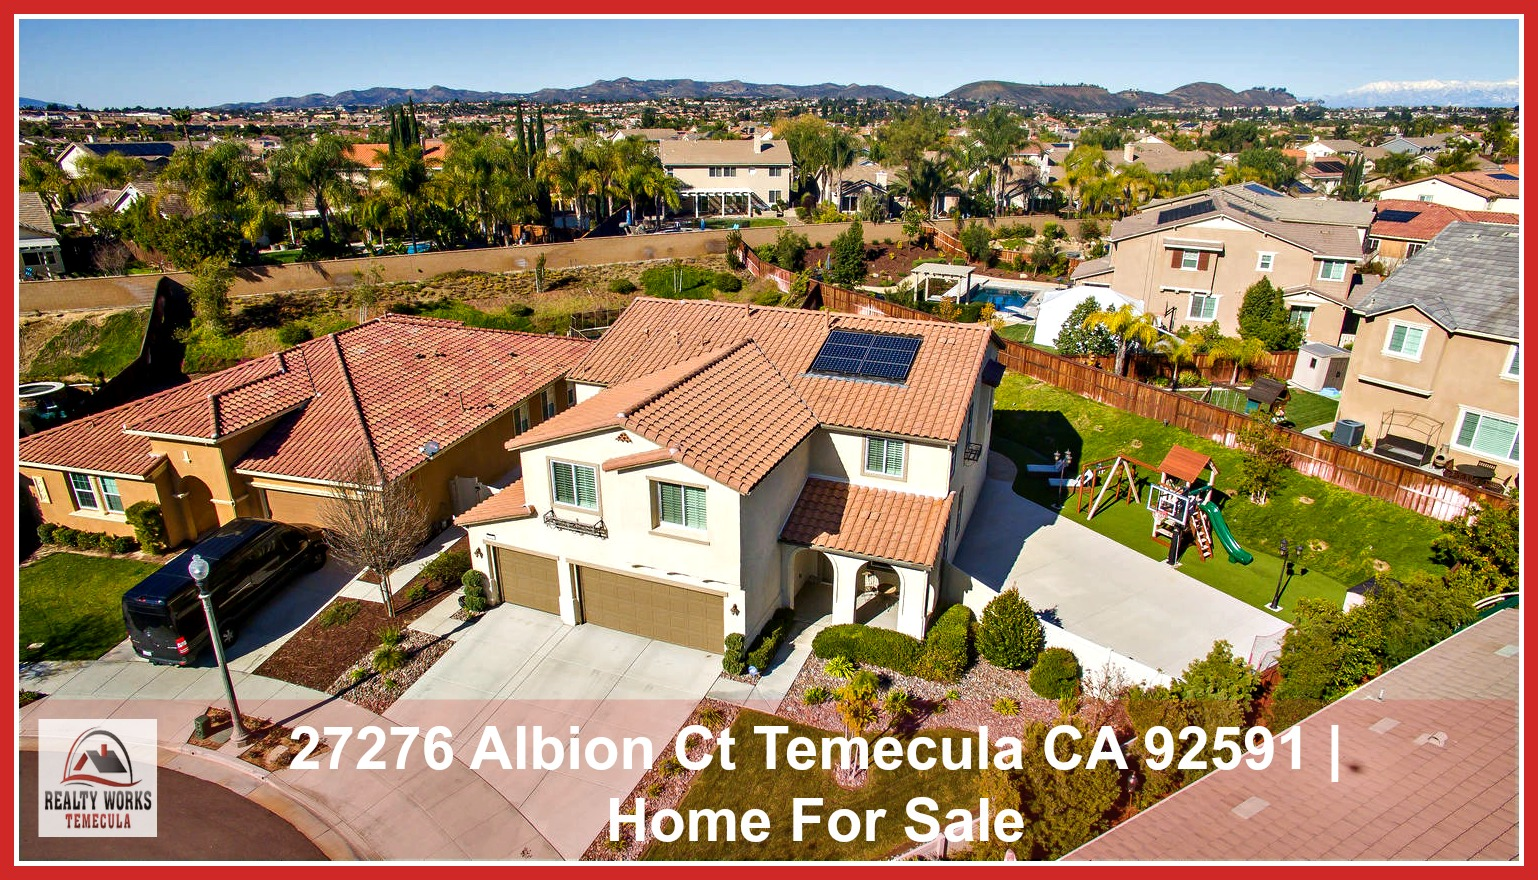 Model homes for sale in temecula california